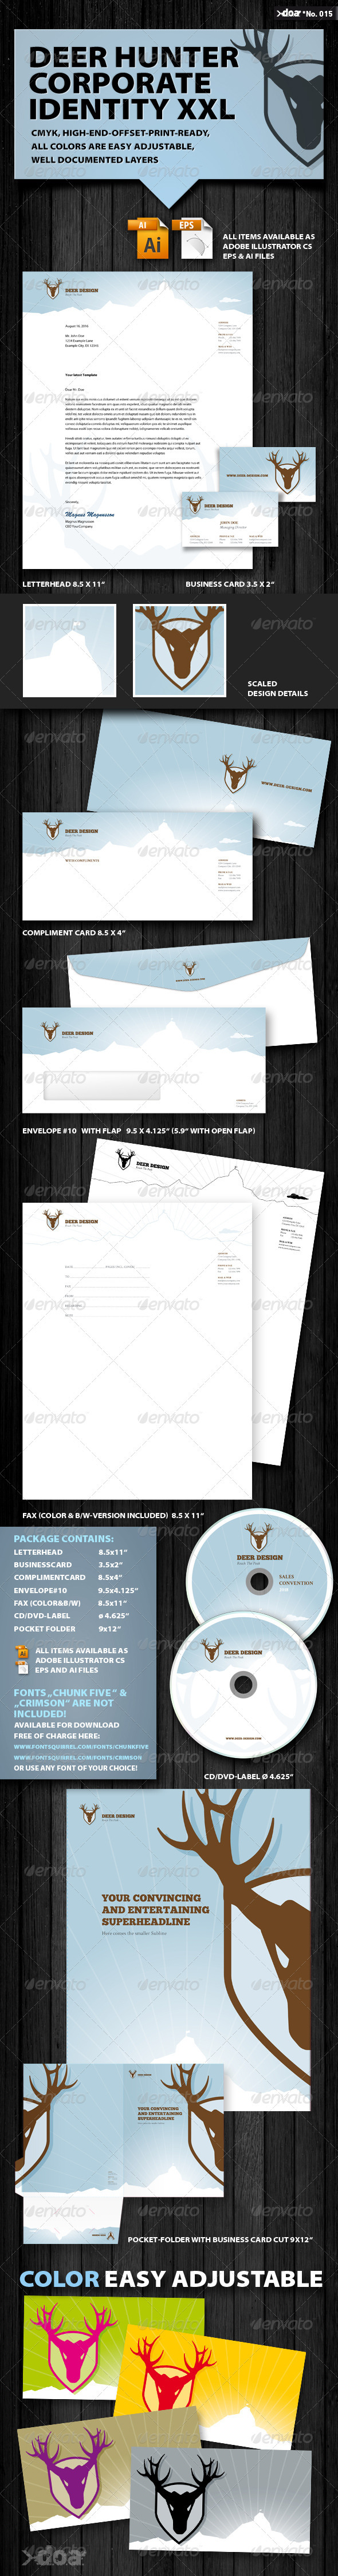 GraphicRiver DEER HUNTER Corporate Identity XXL 397309